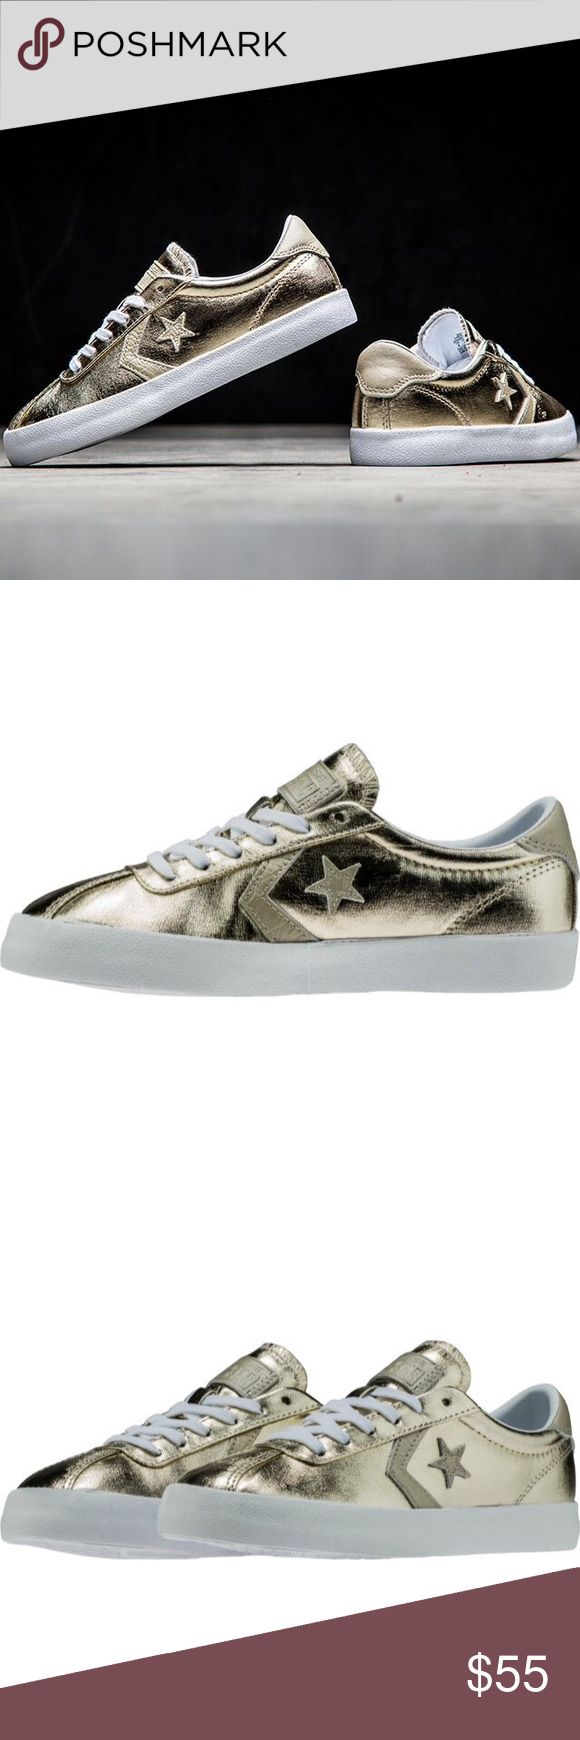 ❗️1 HOUR-SALE❗️Converse womens metallic gold shoes Brand new. Ships same day or very next. Converse Shoes Sneakers